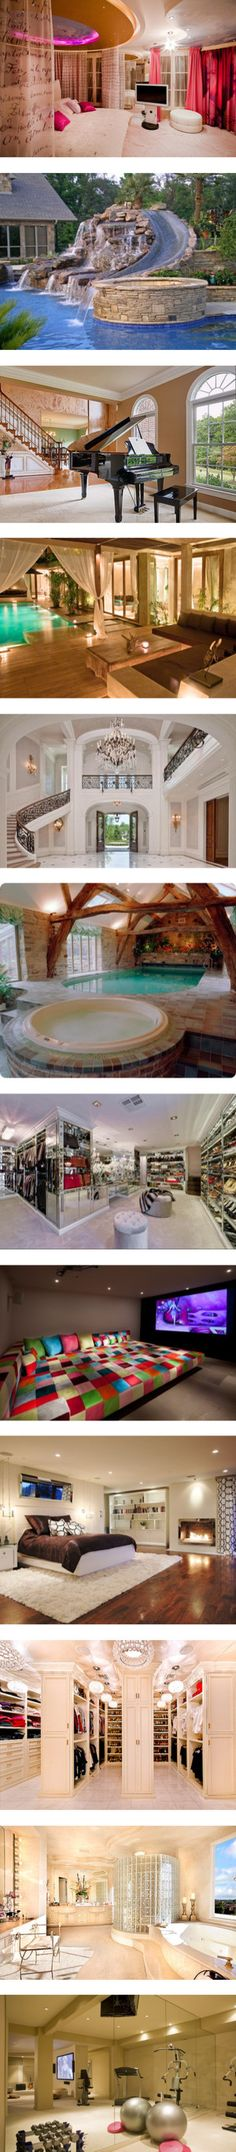 I only need these rooms in my house